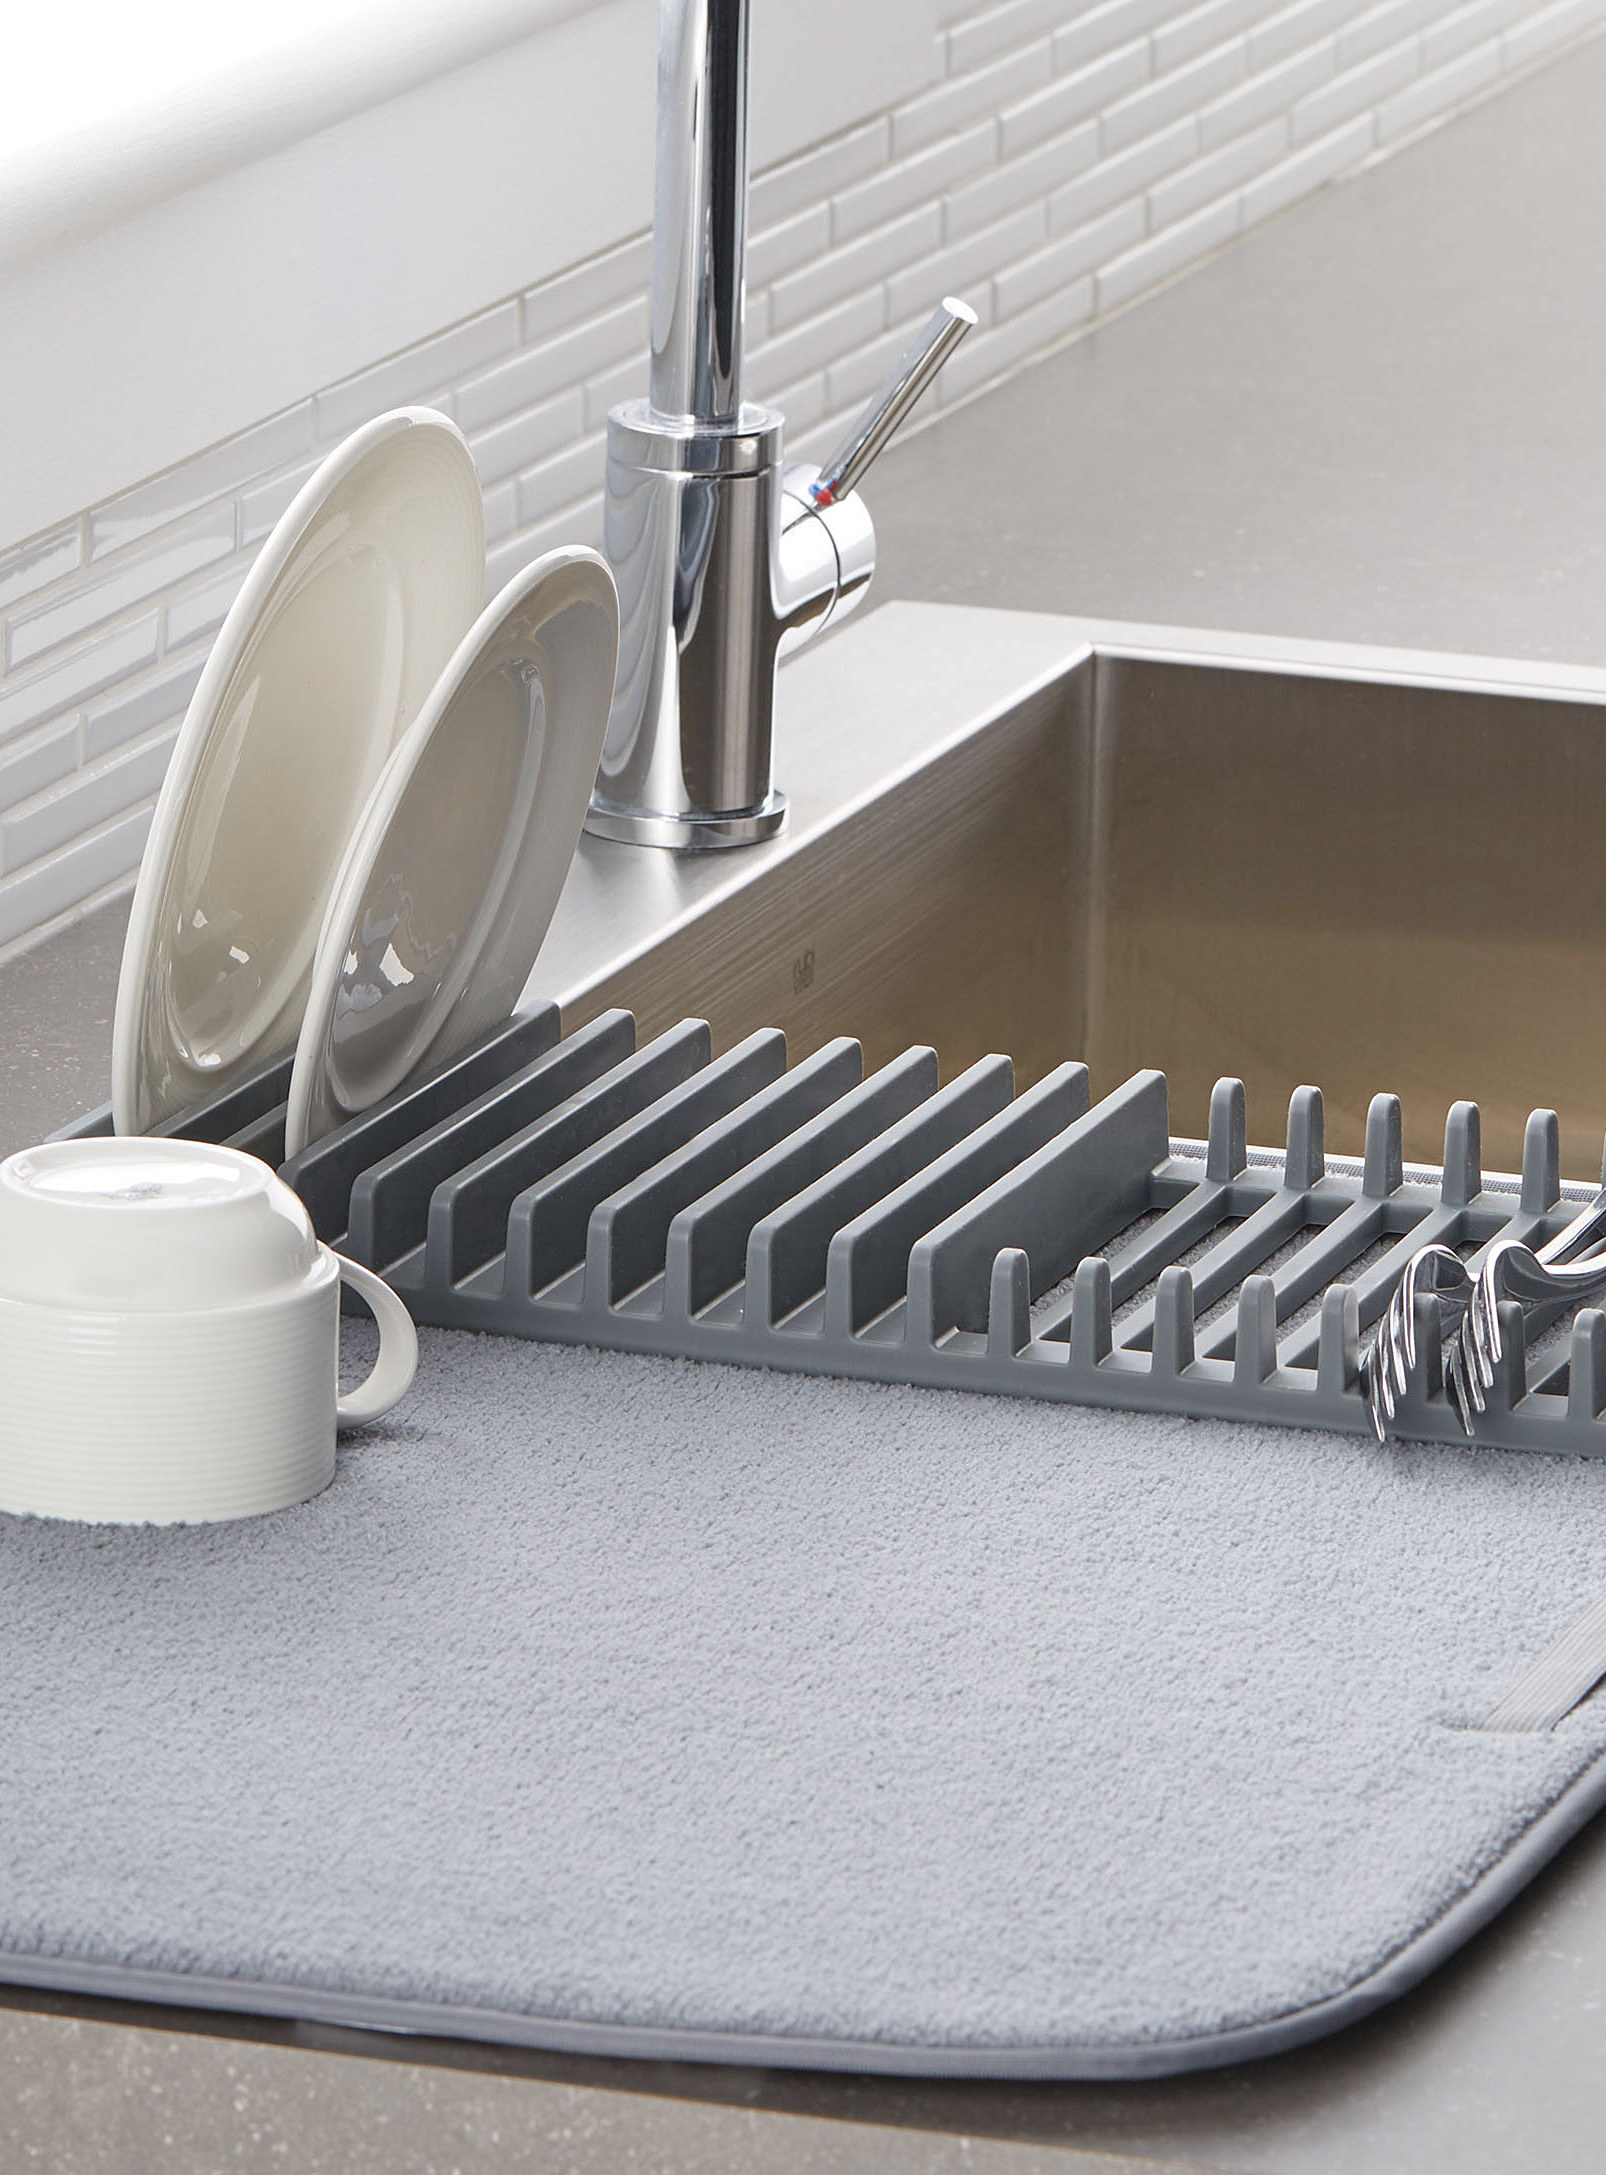 A silicone dish rack attached to a large micofibre mat that has a cup, plates and a couple of forks drying on it